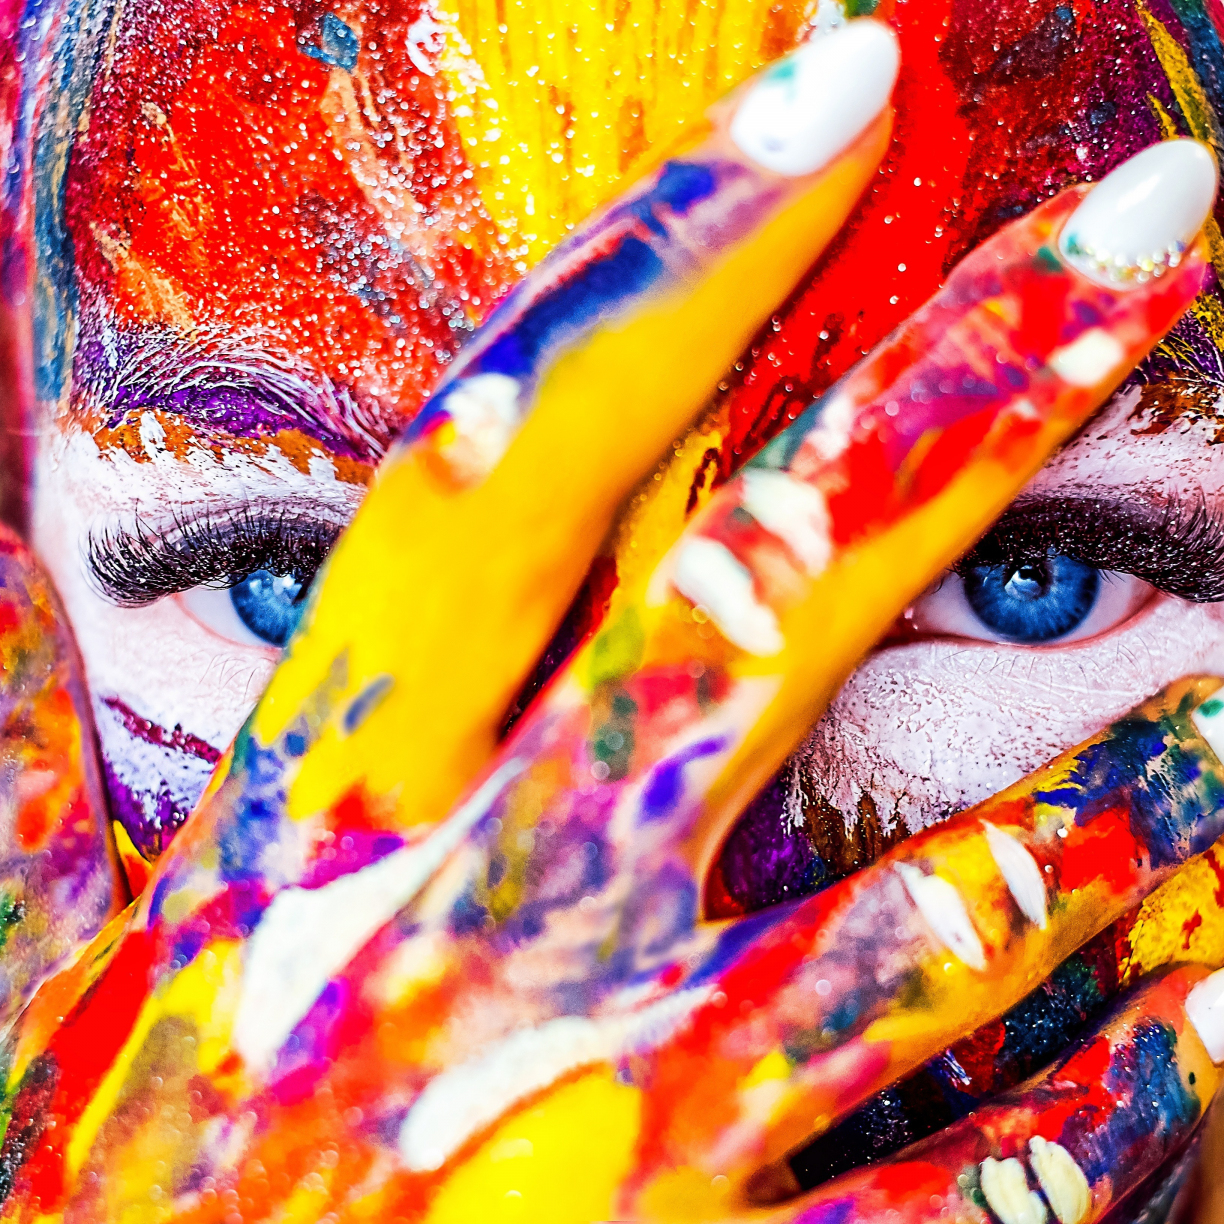 Paint on face and hand, colorful, close up, 1224x1224 wallpaper